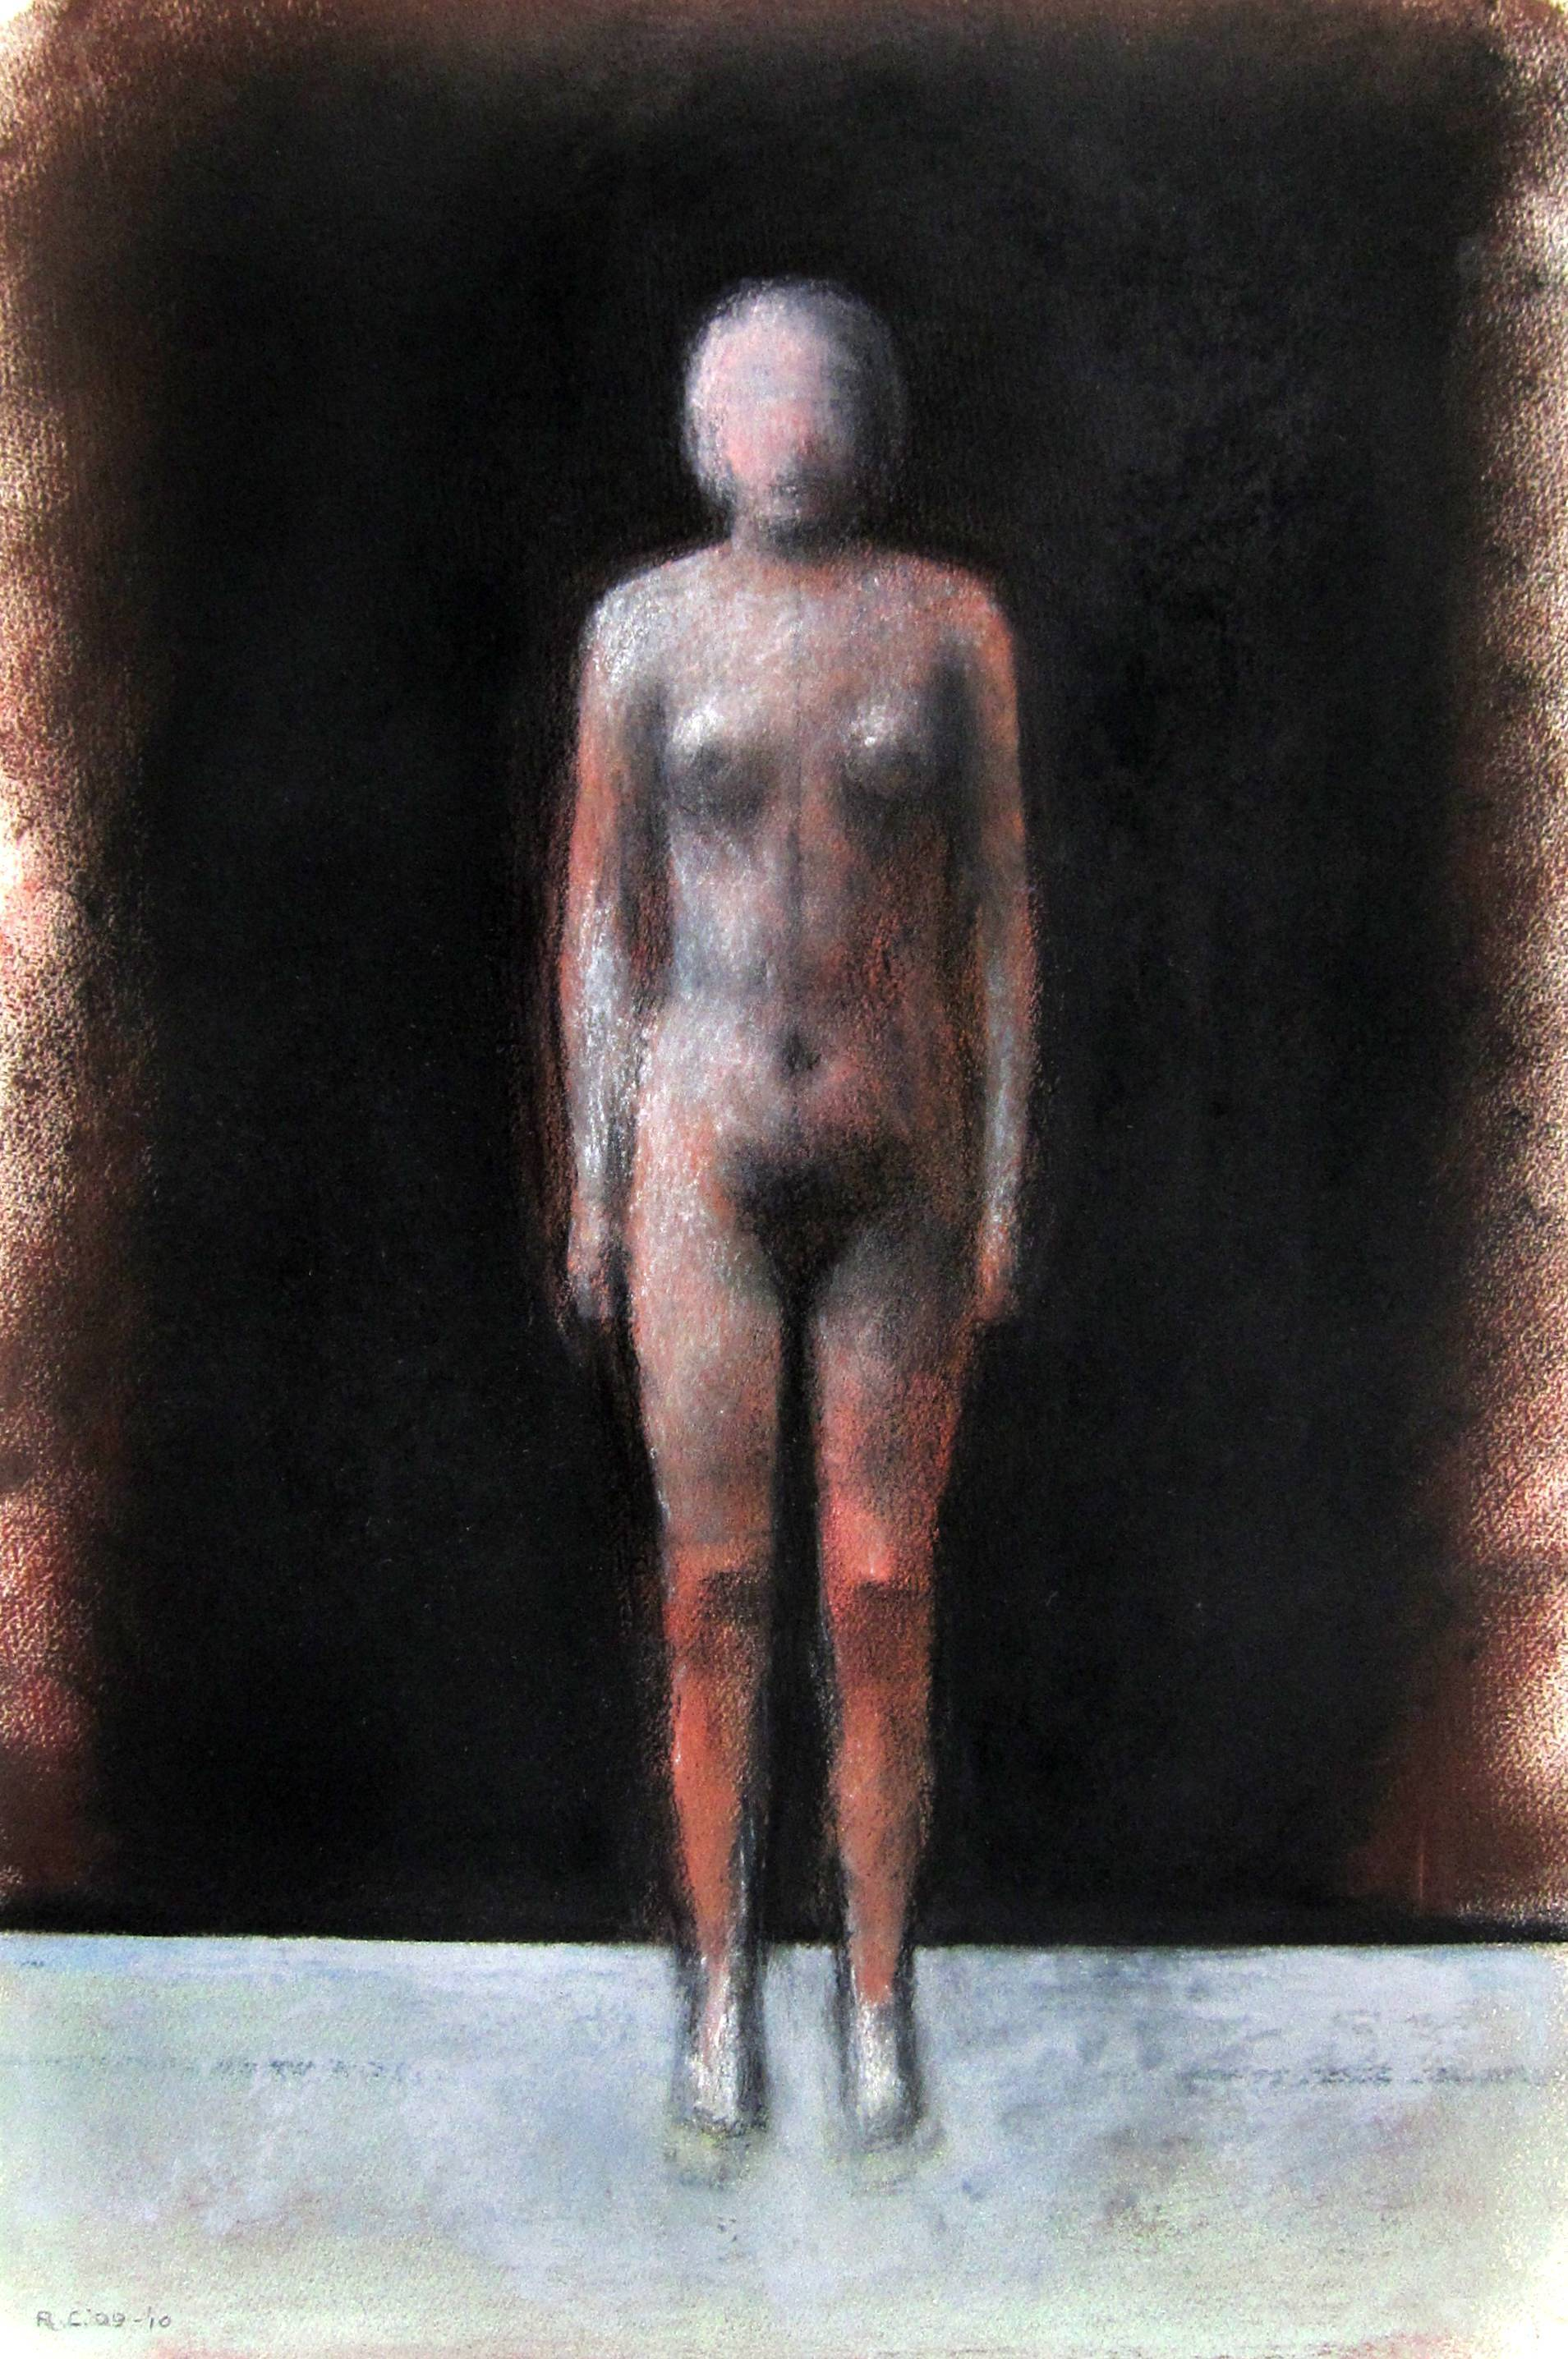 ROBERT CLATWORTHY, R.A. [1928-2015]. Standing Figure, 2009-10. Acrylic and pastel on paper. Signed